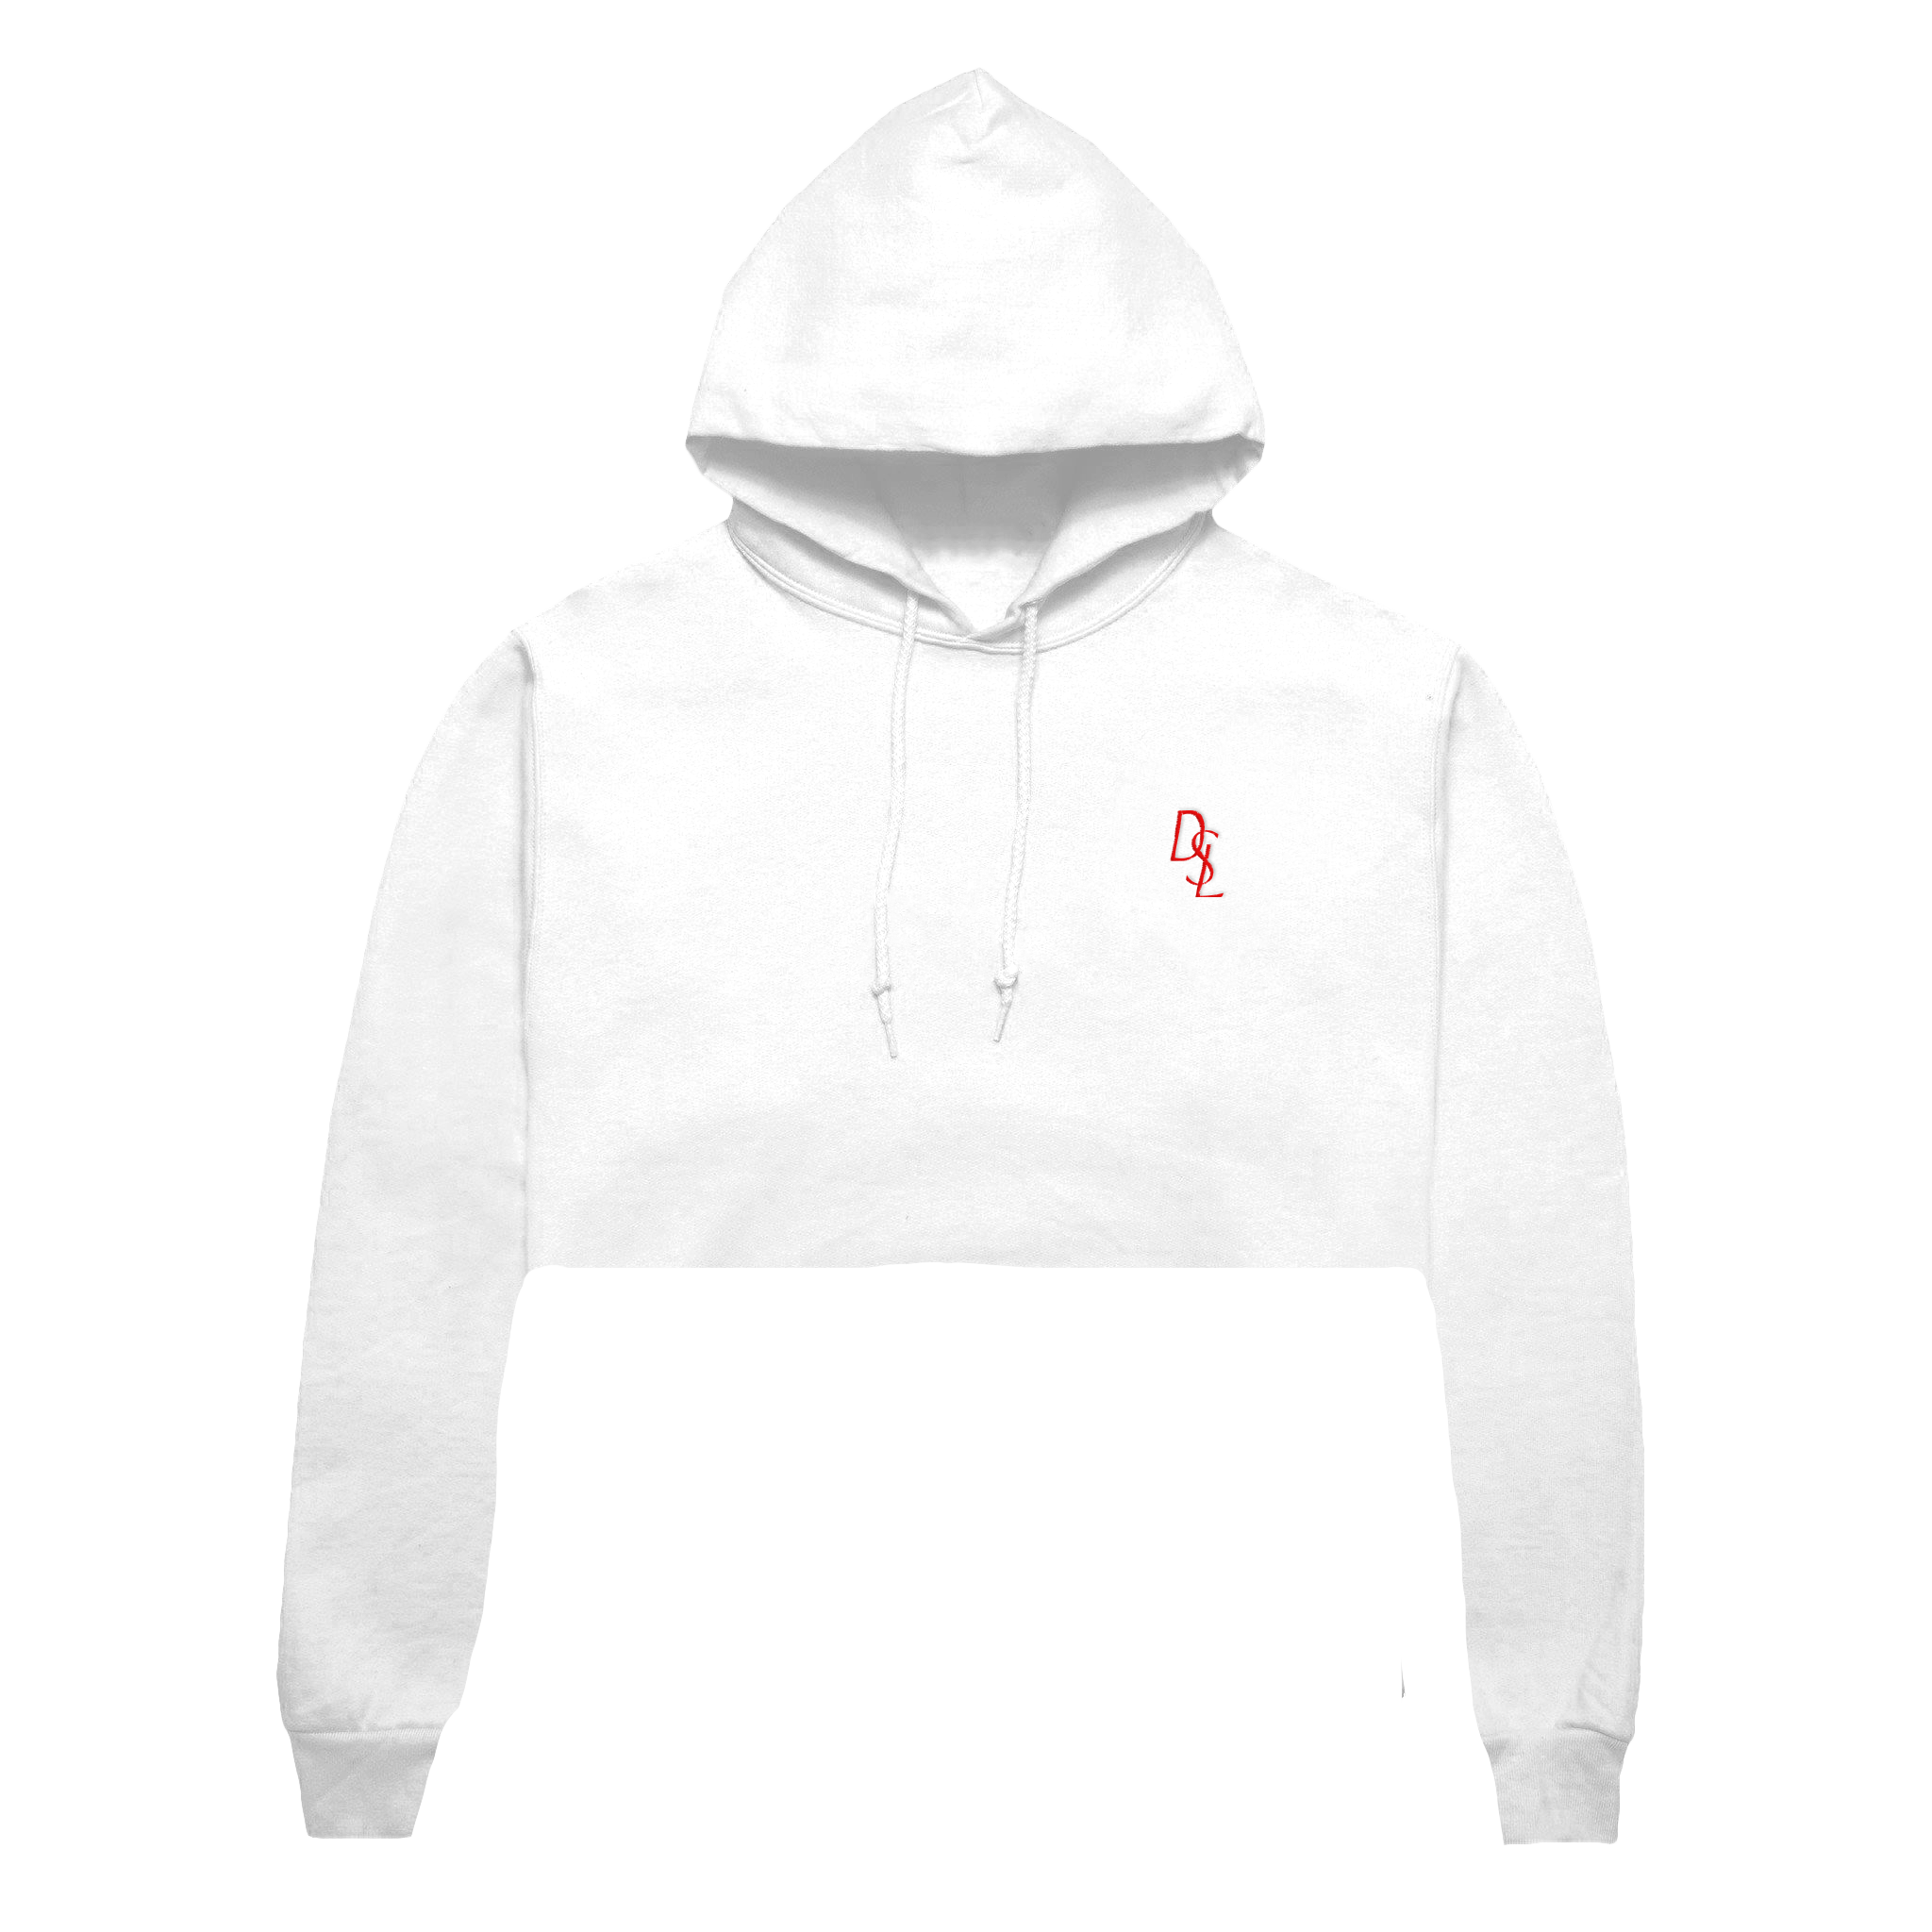 Hoodie transparent cropped. Dsl embroidered crop white